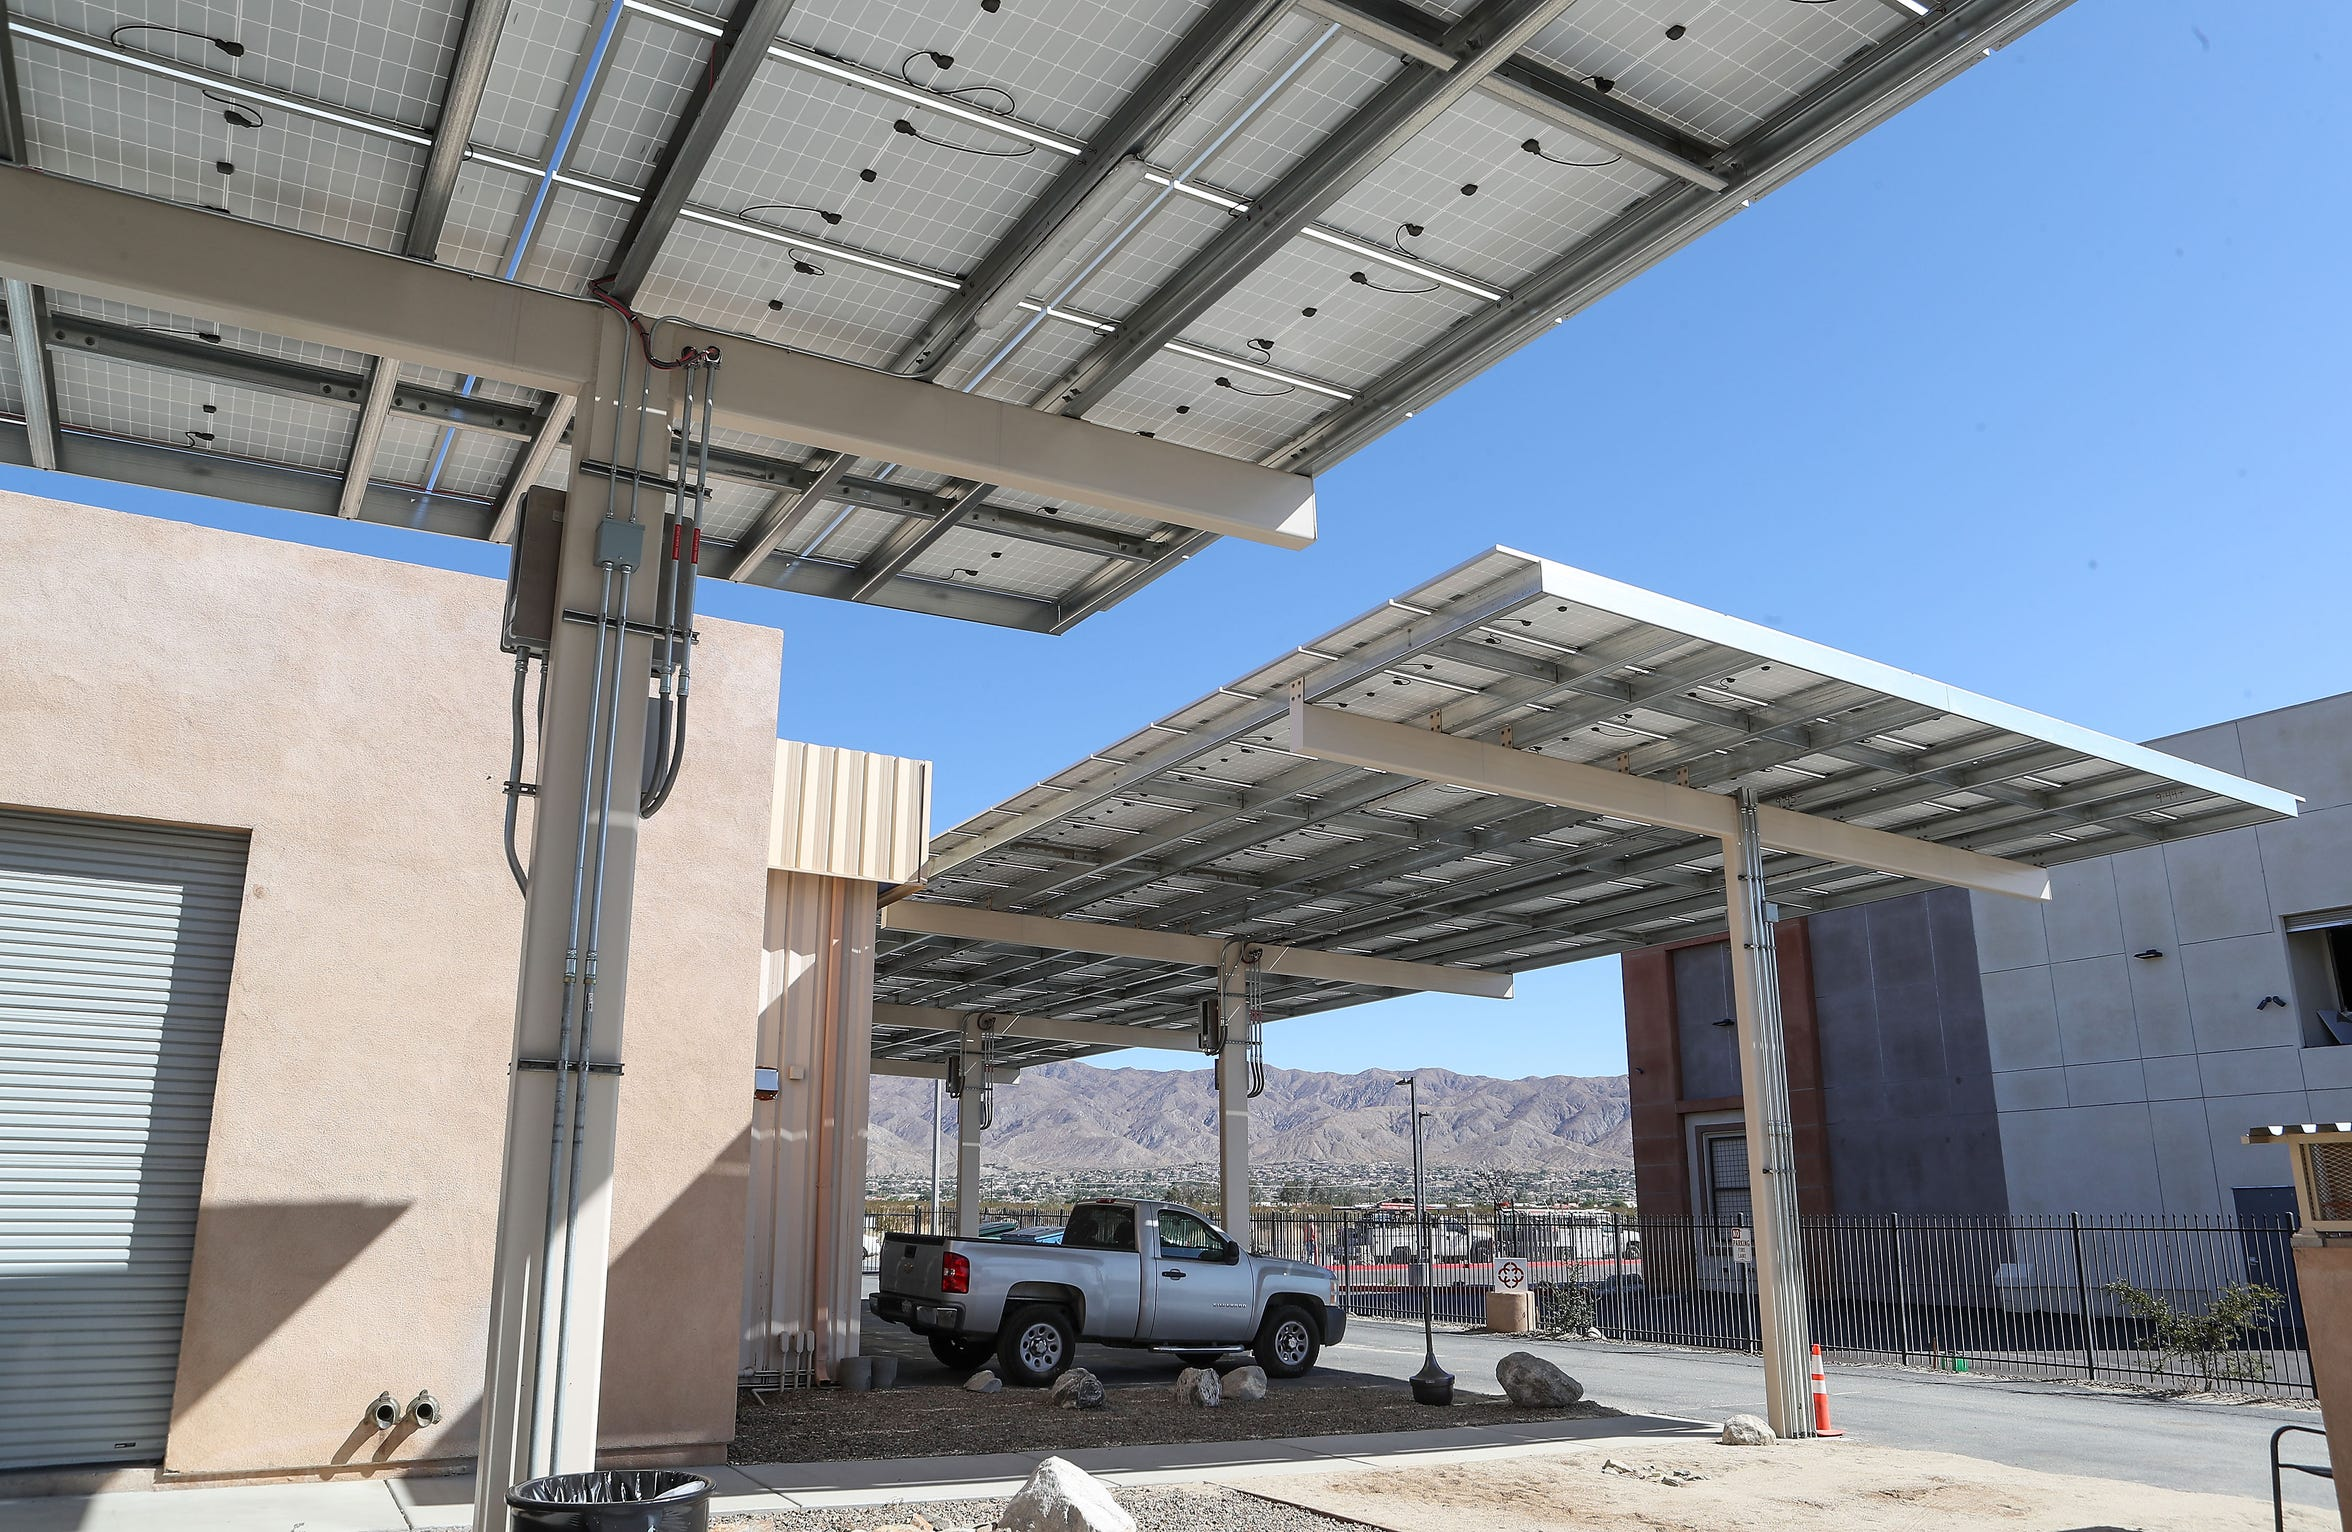 Solar panels generate electricity at the Canndescent grow facility in Desert Hot Springs, Sept. 17, 2019.